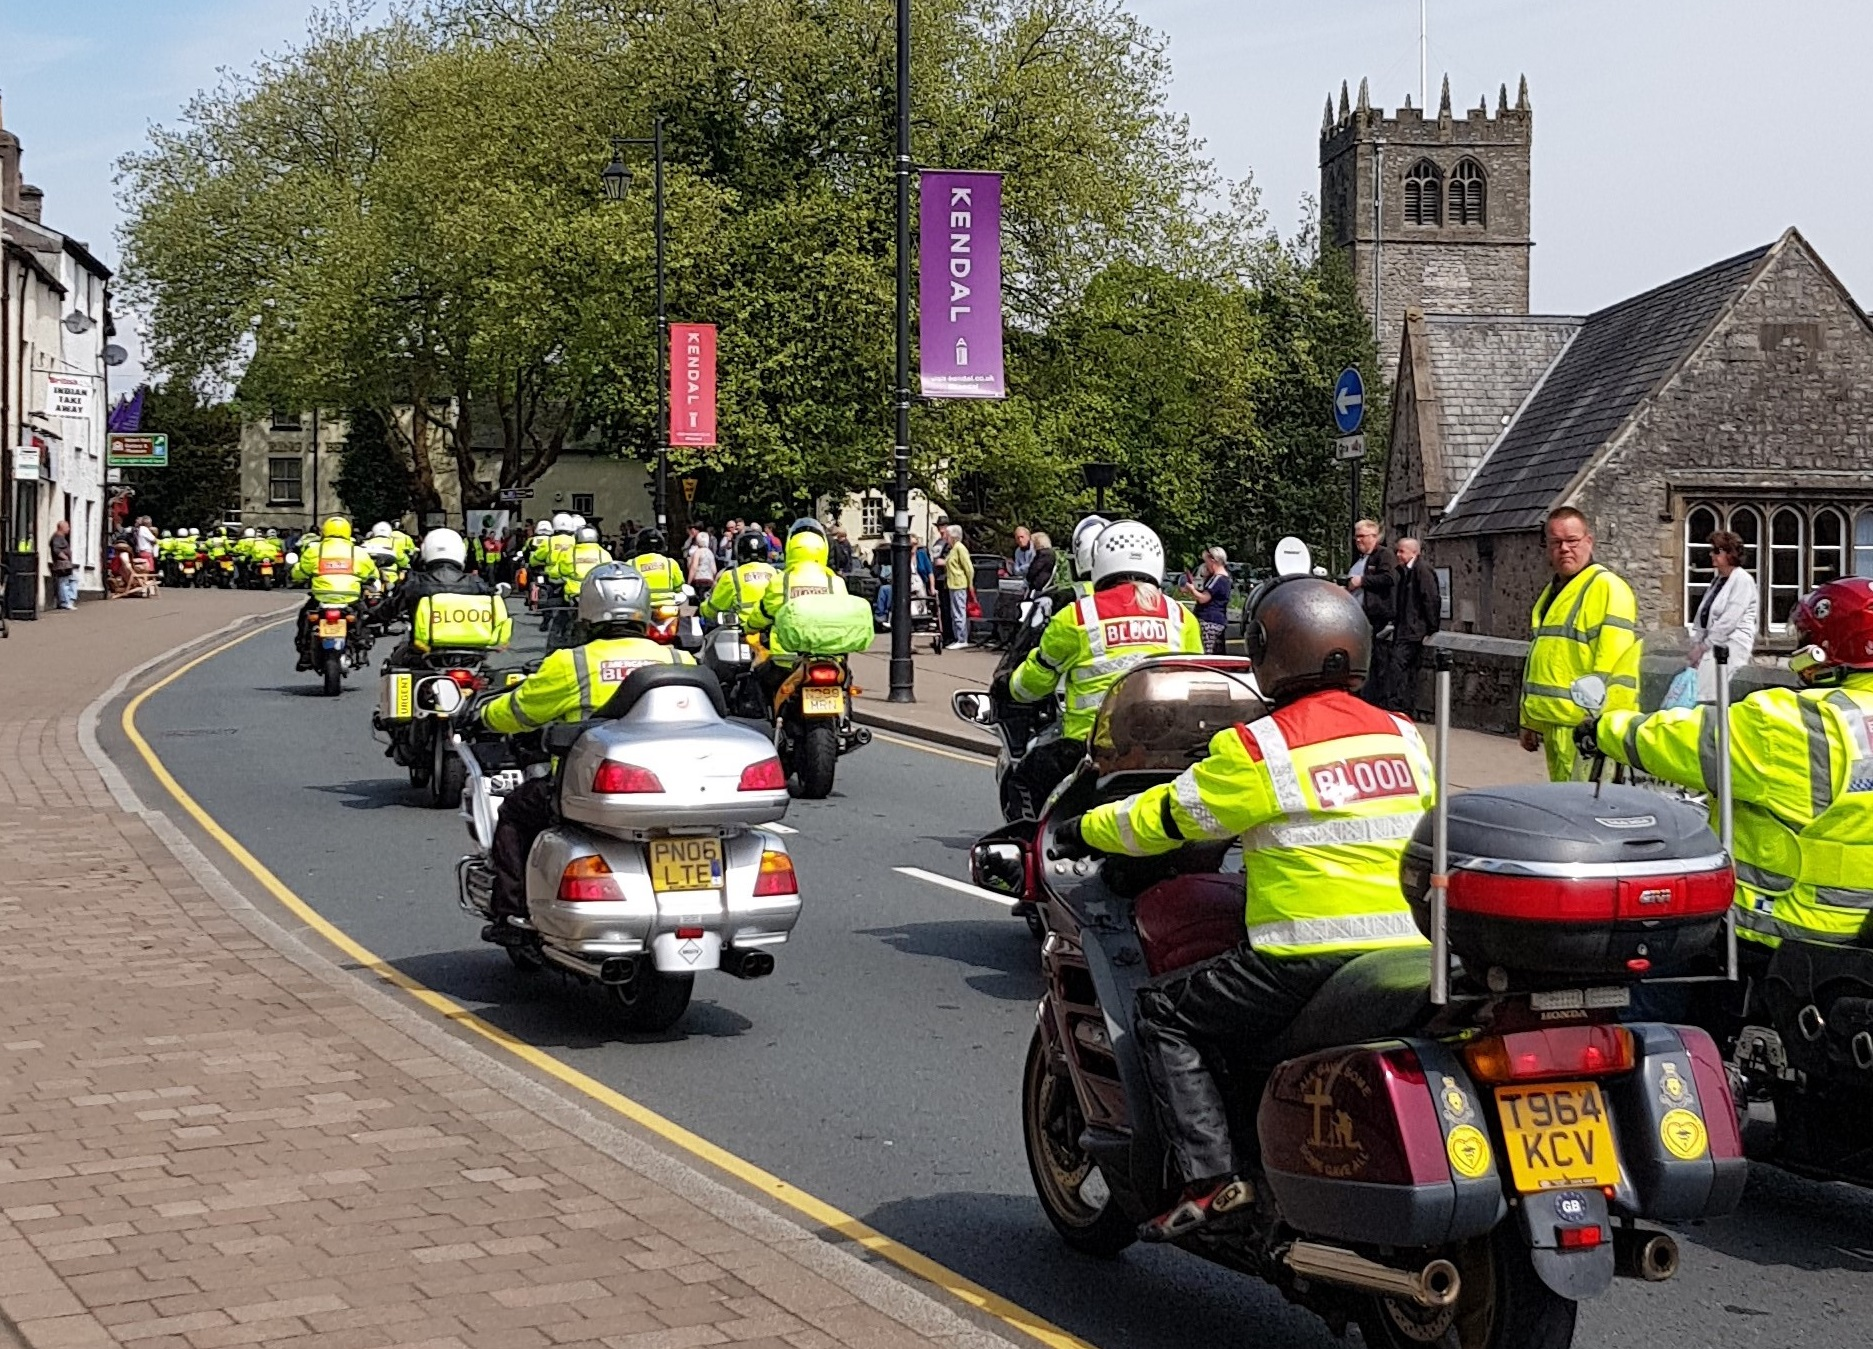 Hundreds of motorcyclists turn out to remember Kendal blood biker